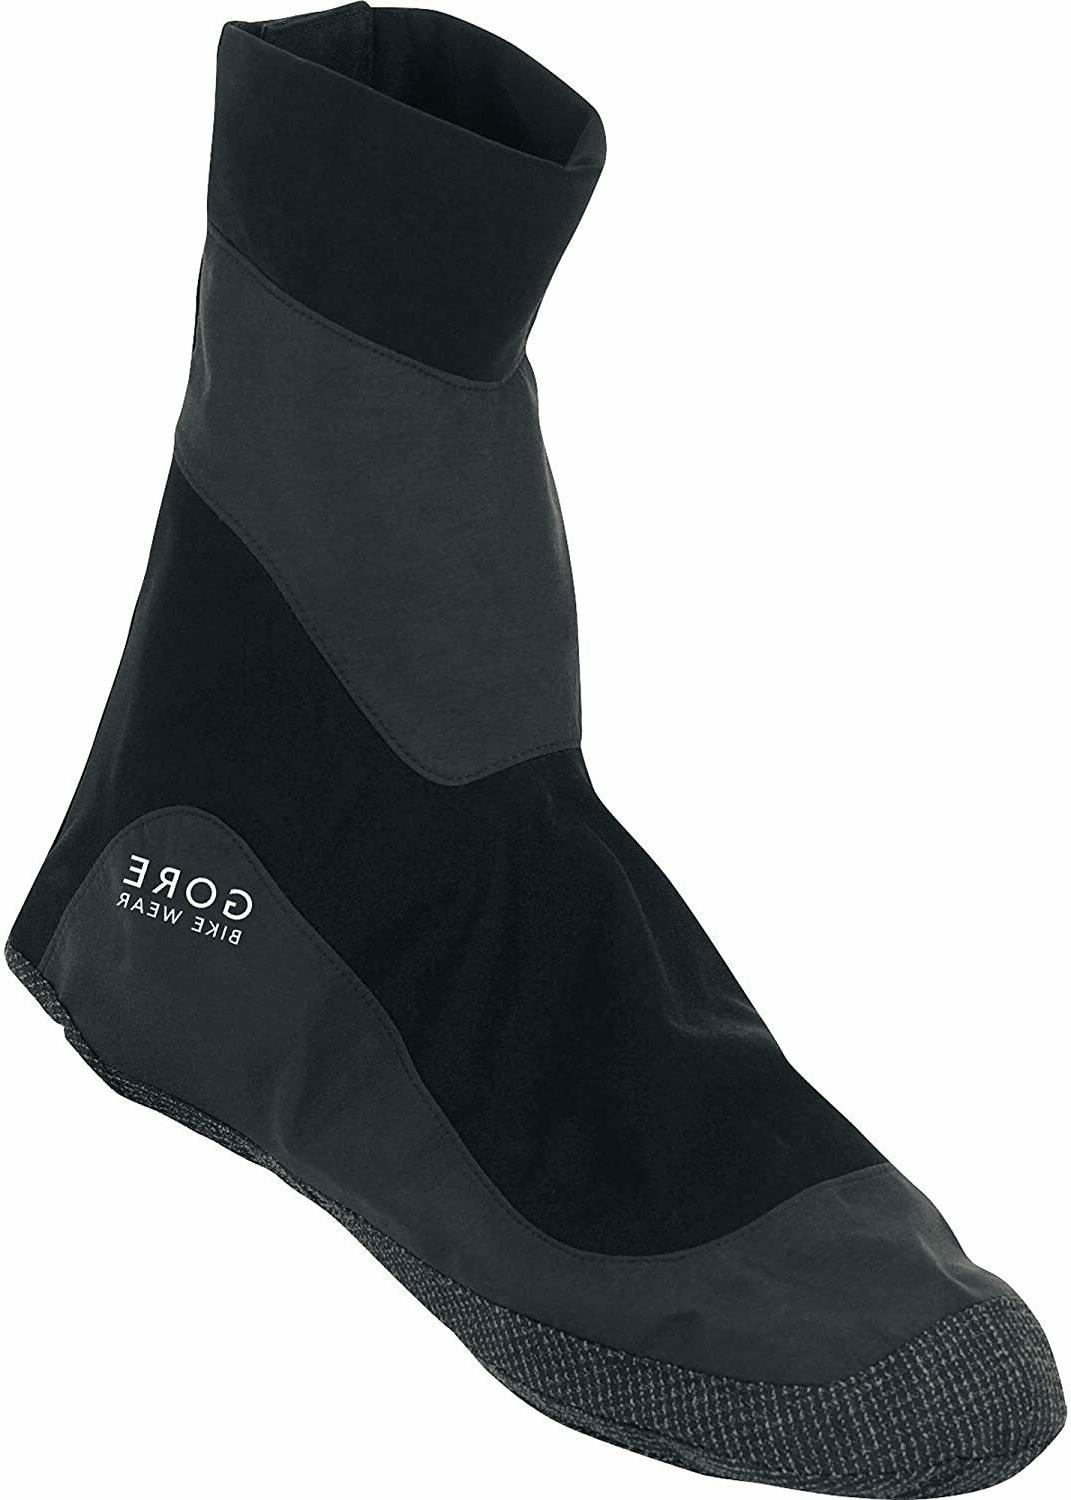 gore tex cycling overshoes shoe cover black